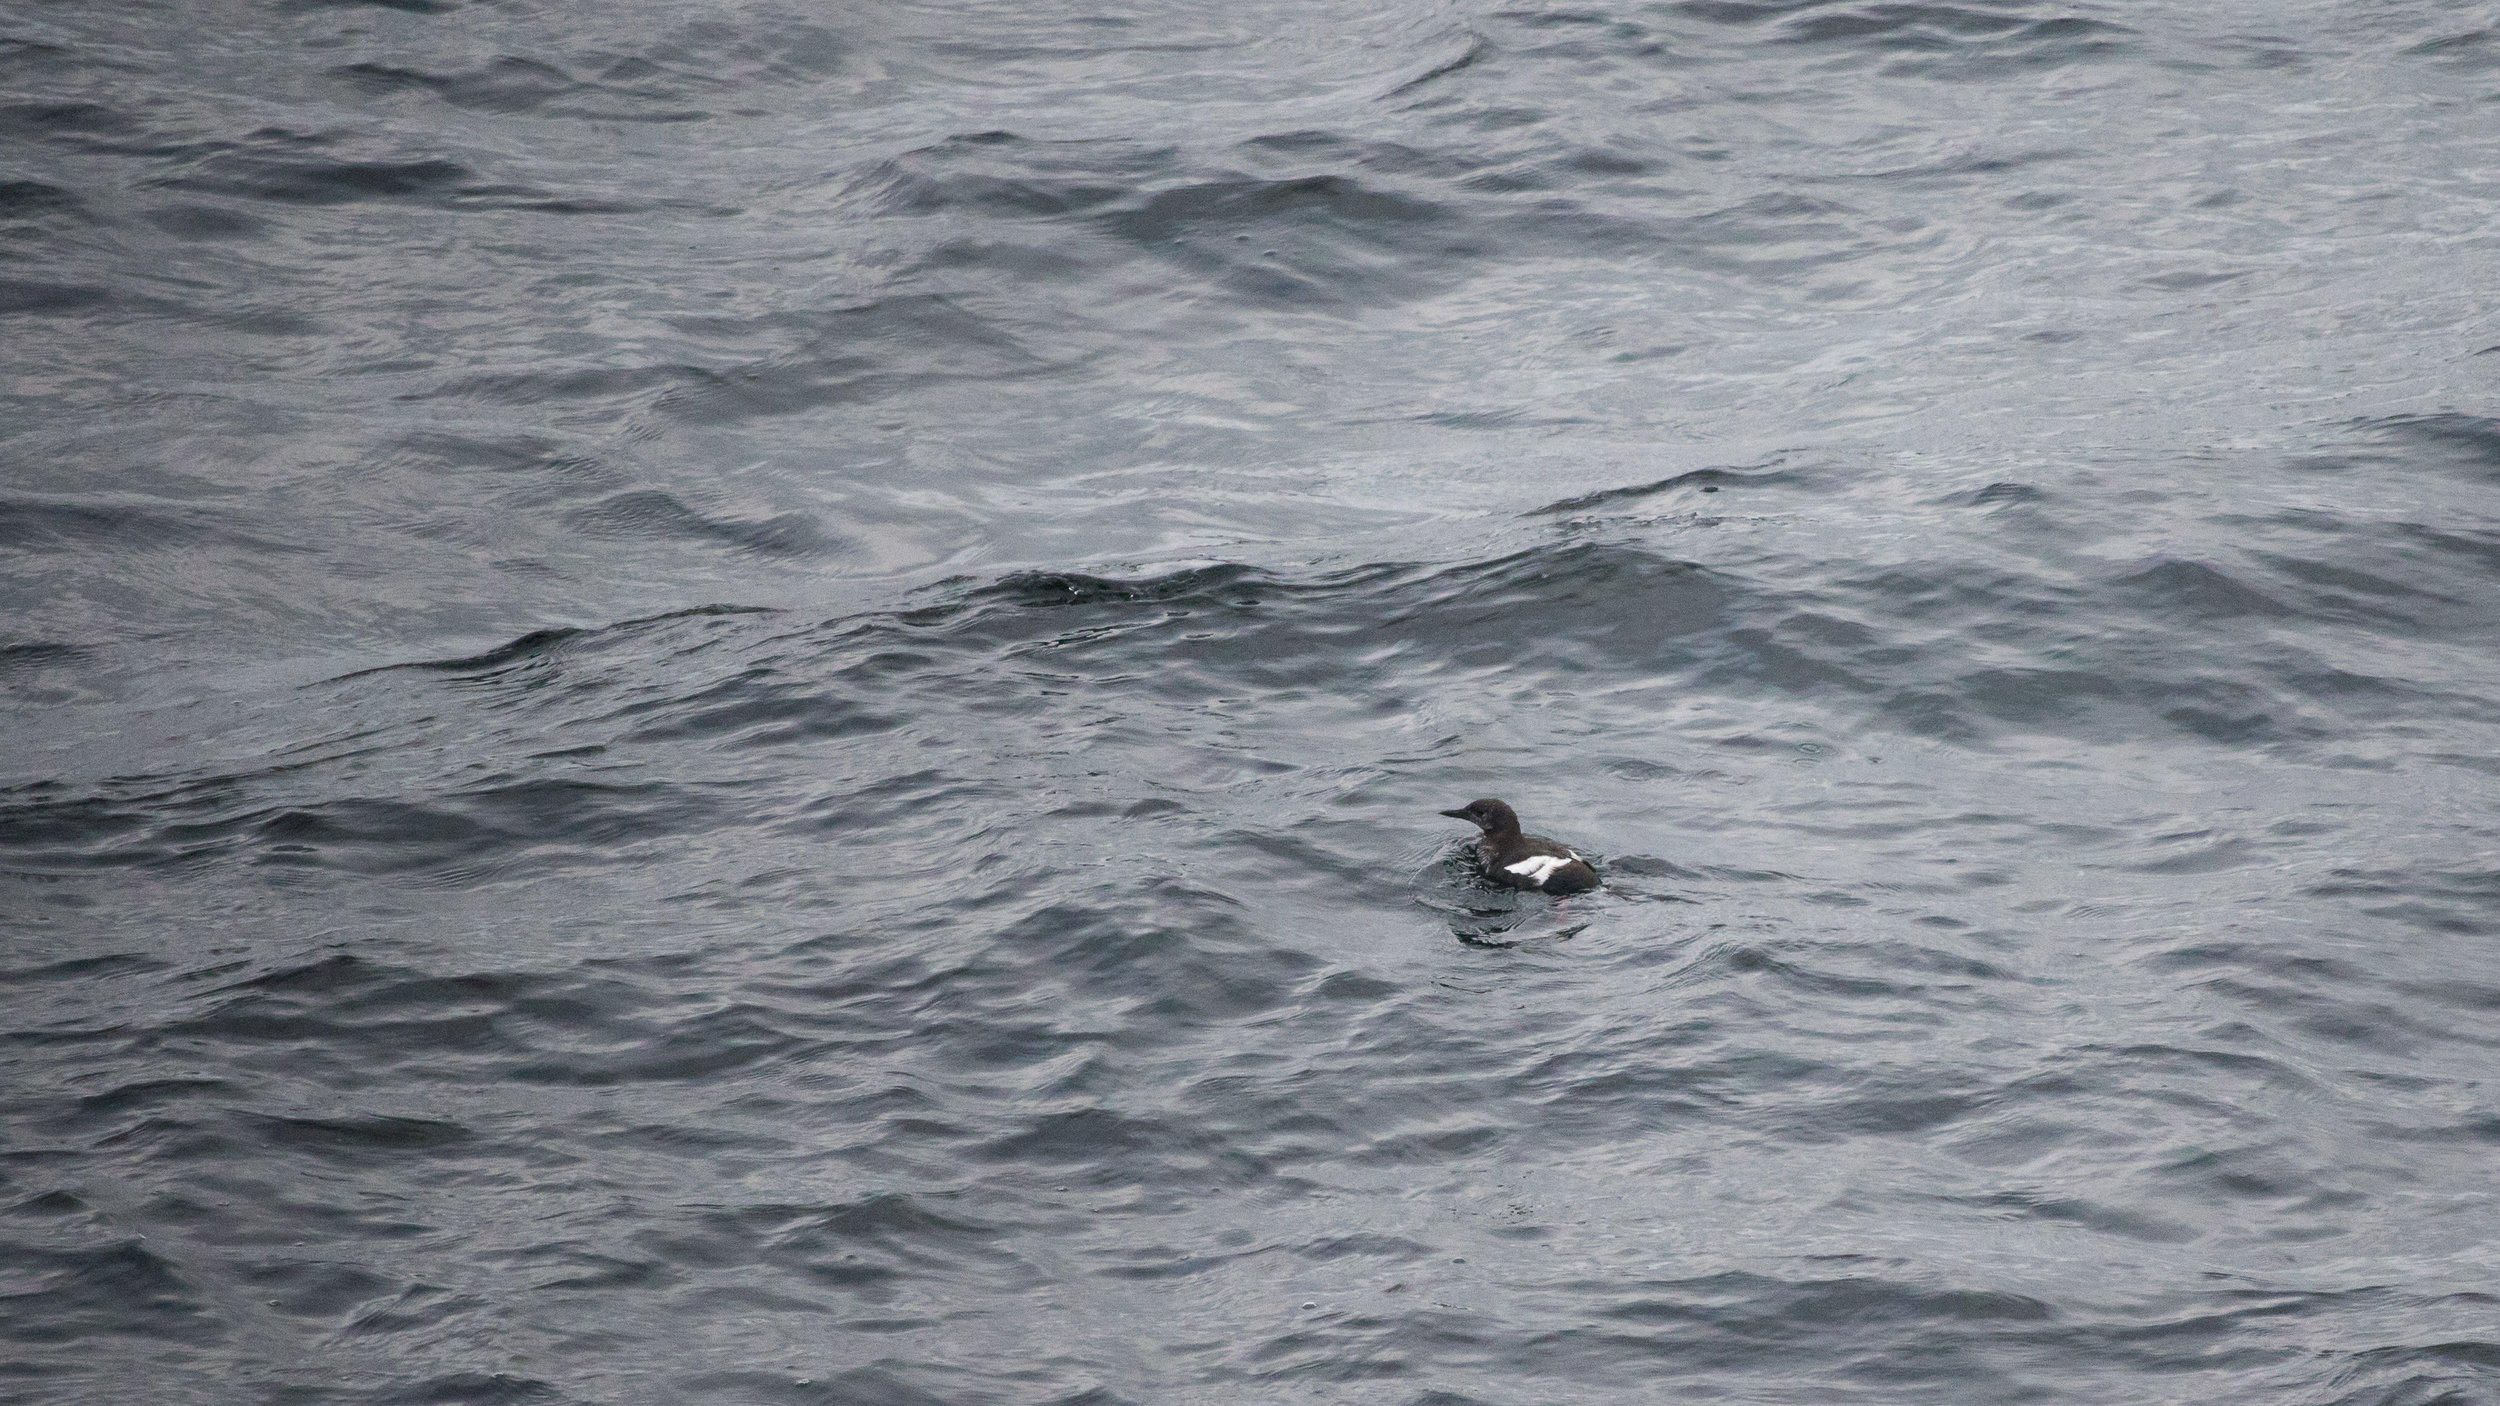 Black Guillemot (Cepphus grylle) from the ferry between Islay and Kennacraig, Scotland. August 2015. Not baited. Not called in.